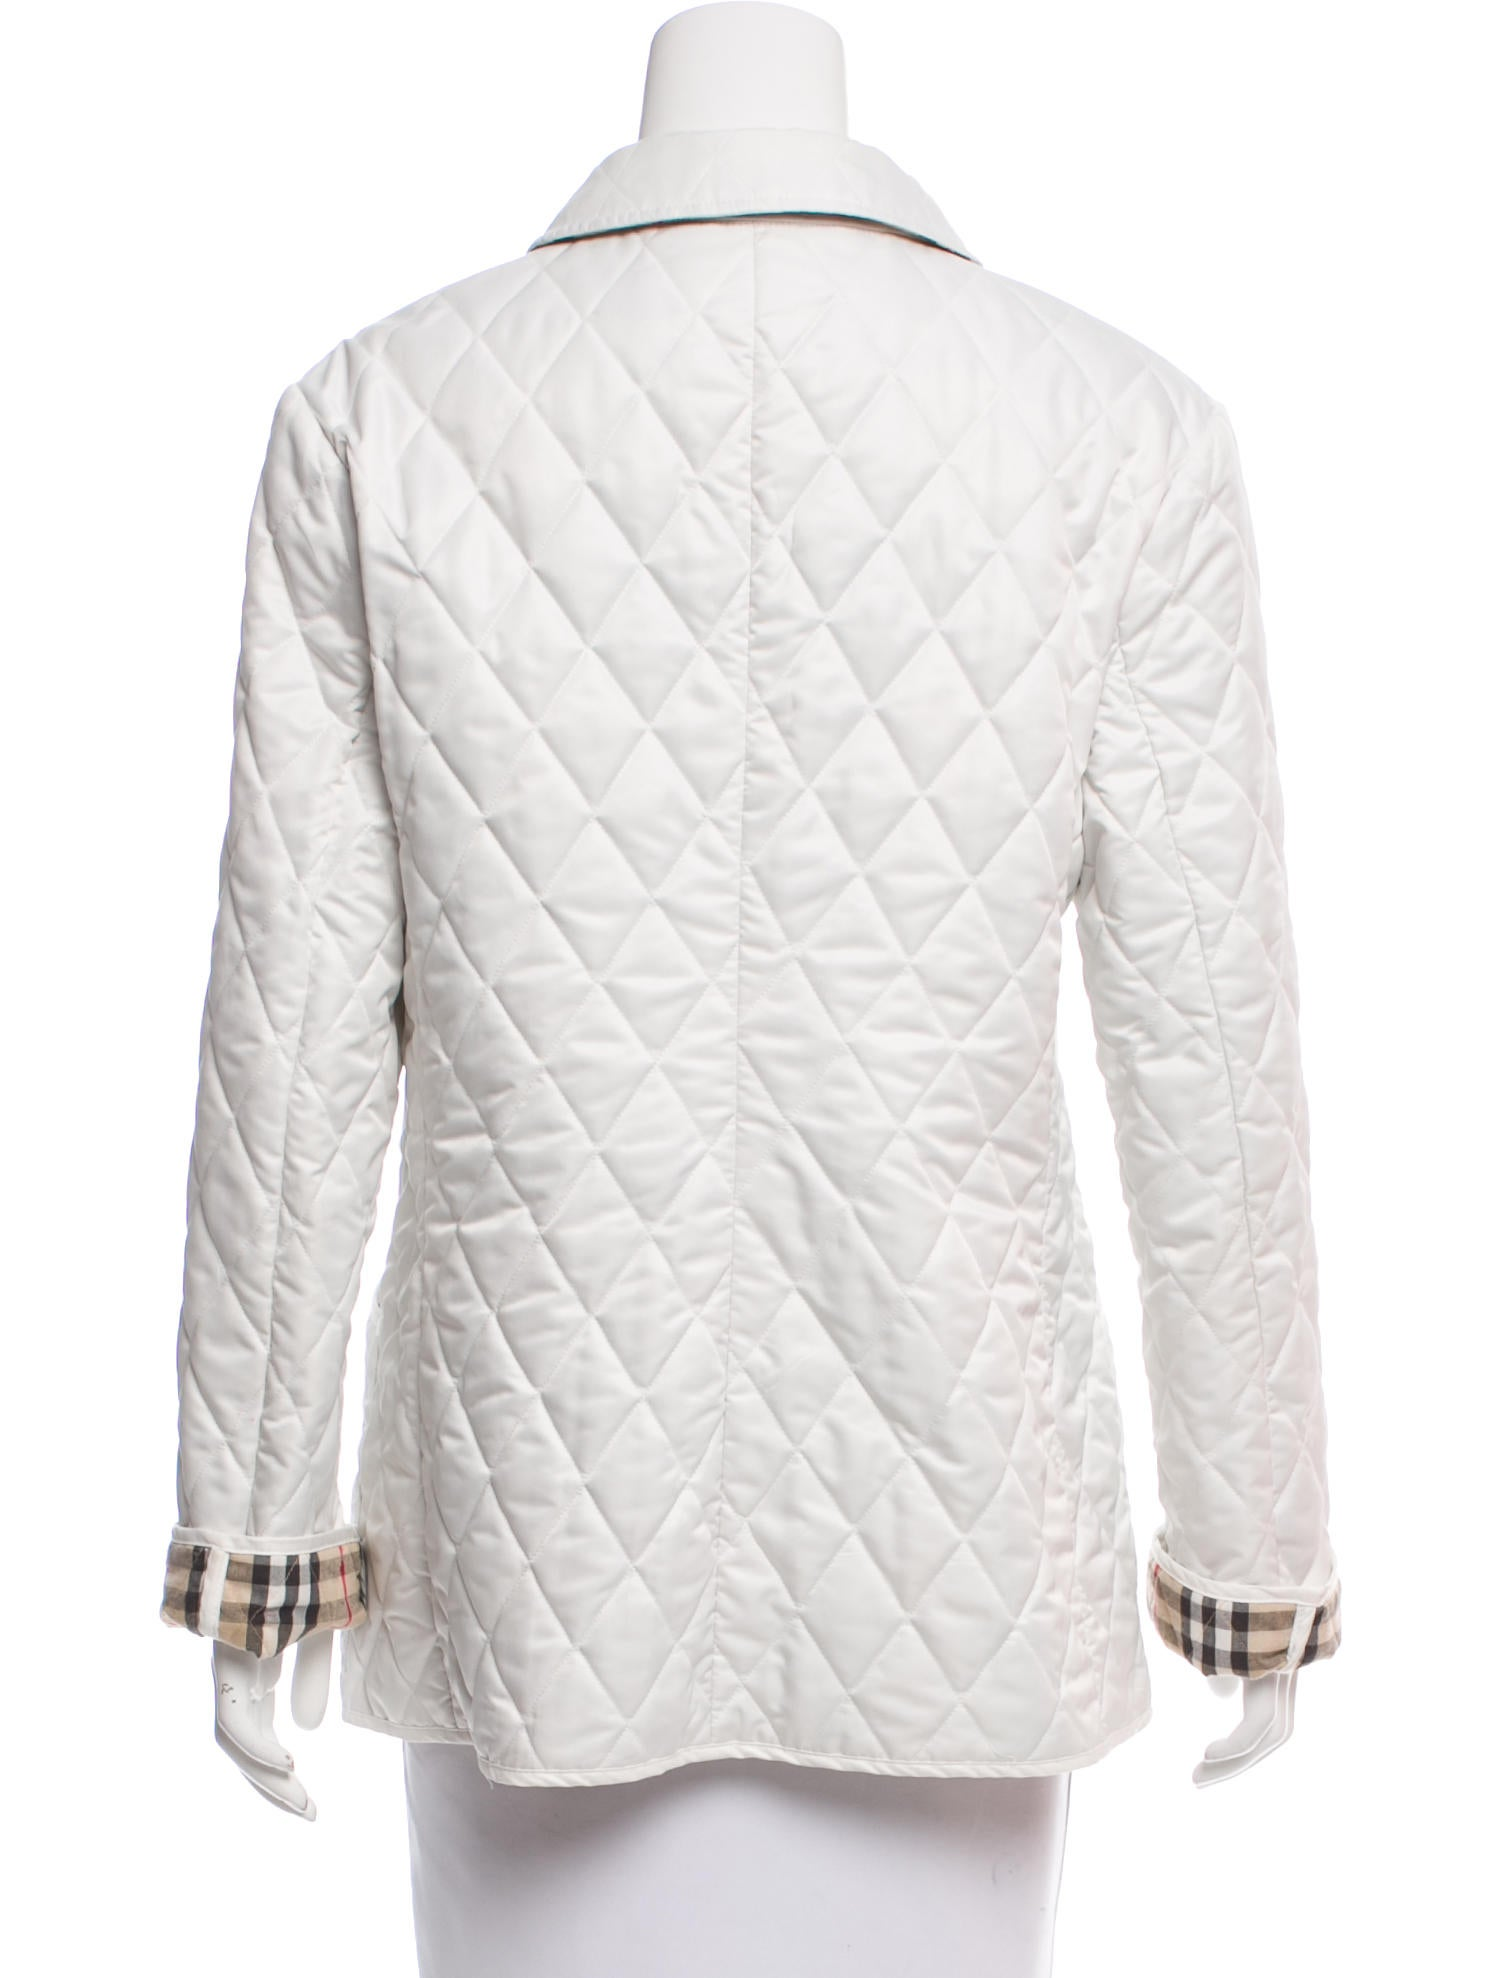 Burberry Quilted Lightweight Jacket Clothing Bur67378